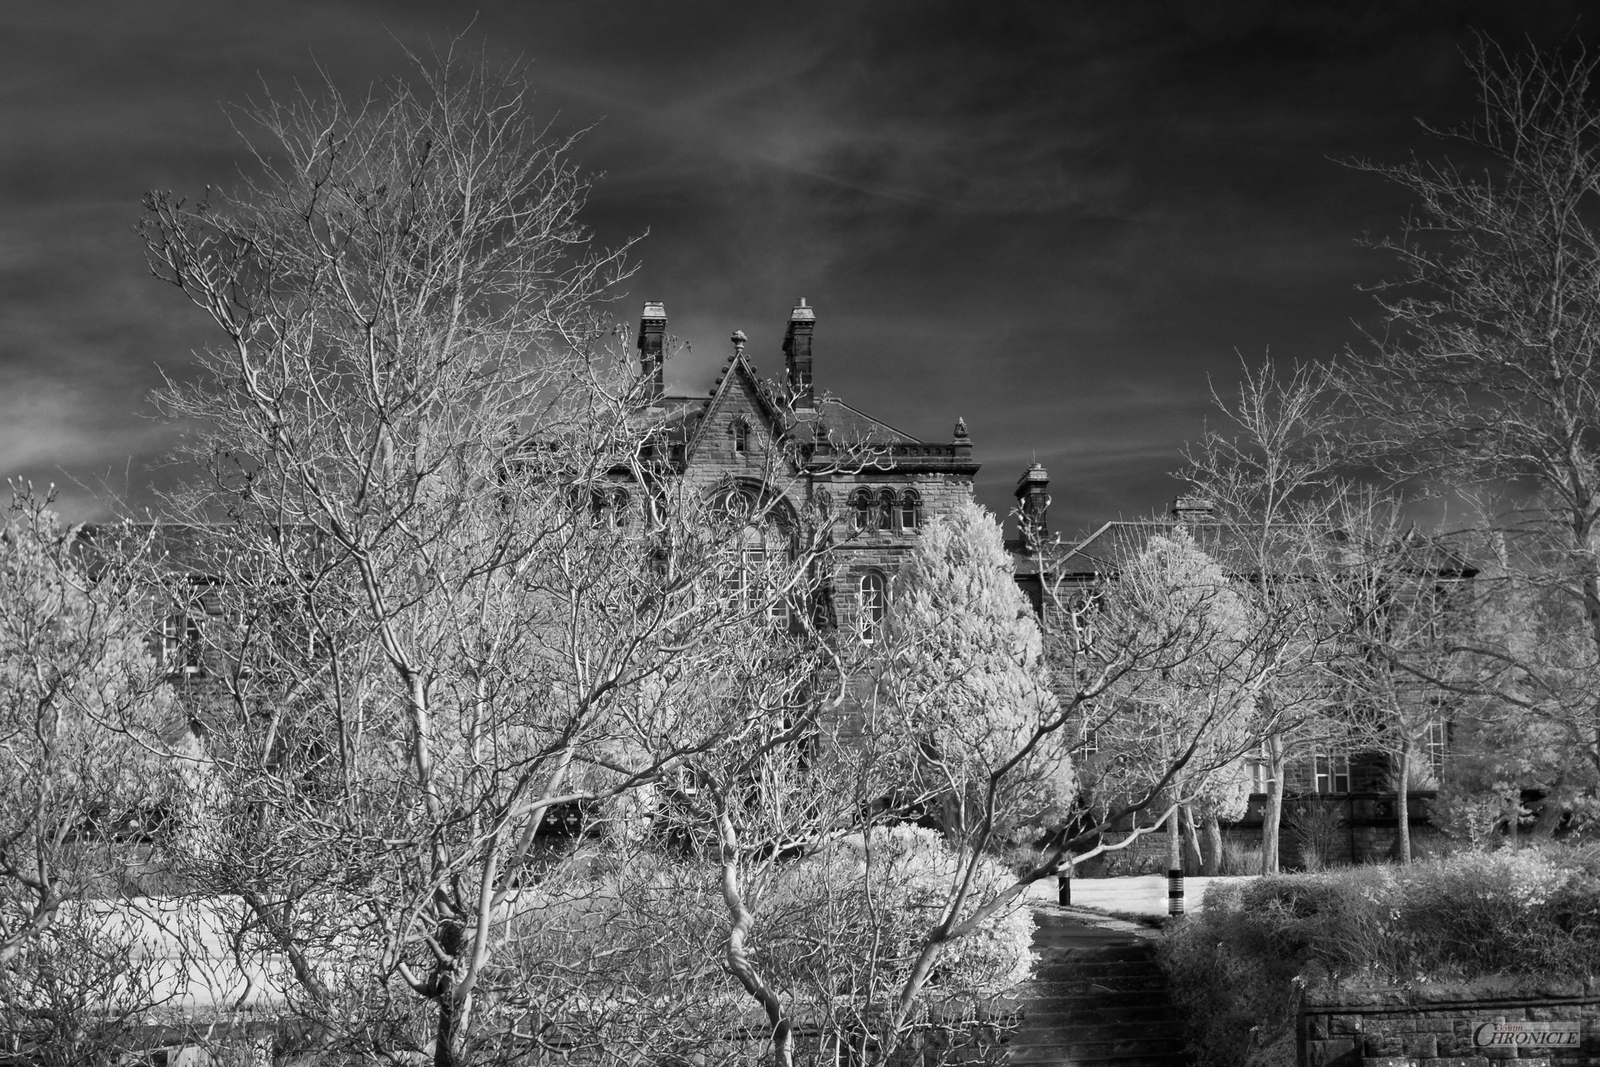 First Shot from Ricoh GR 450nm Conversion | 715nm Infrared | 35